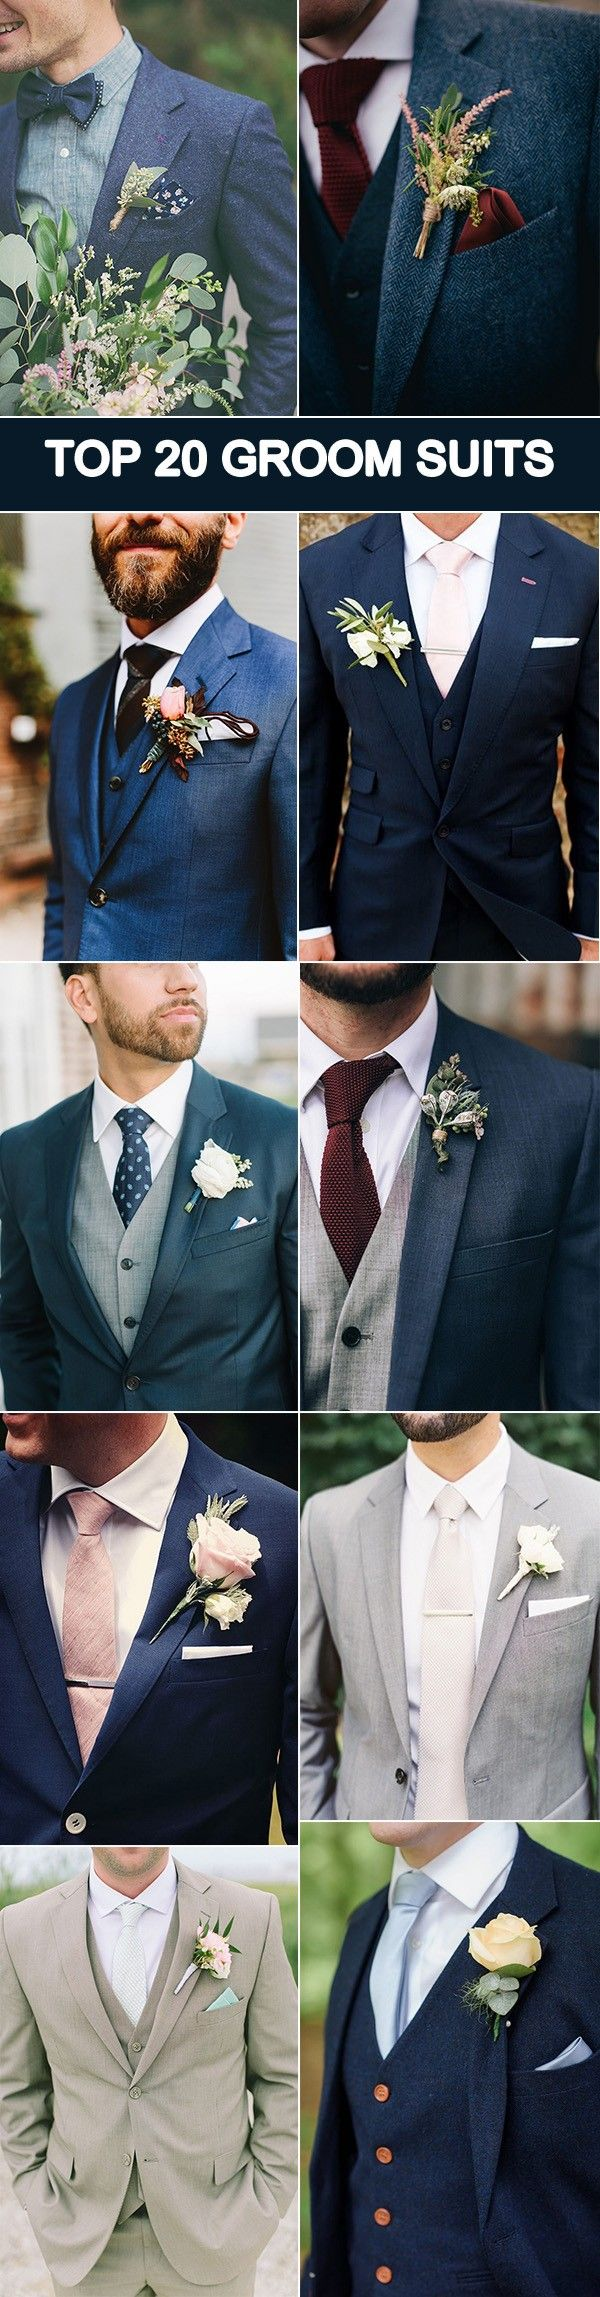 top 20 groom suits wedding ideas